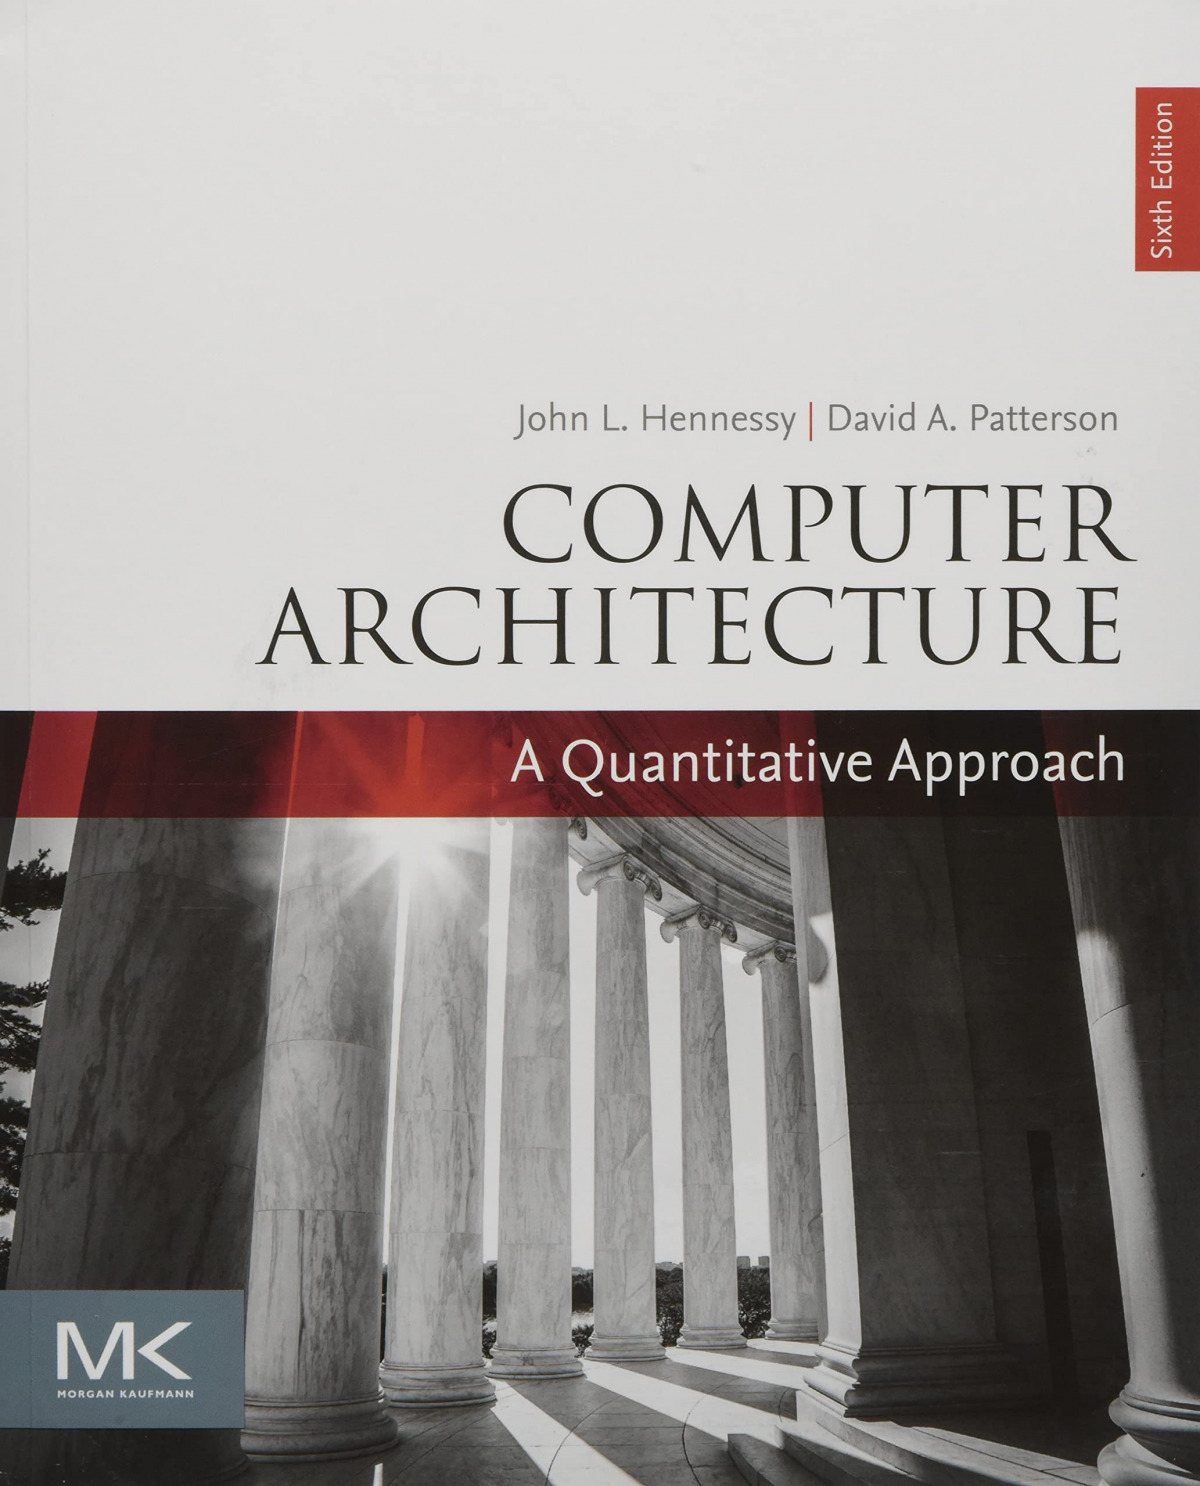 COMPUTER ARCHITECTURE A QUANTITATIVE APPROACH 9780128119051